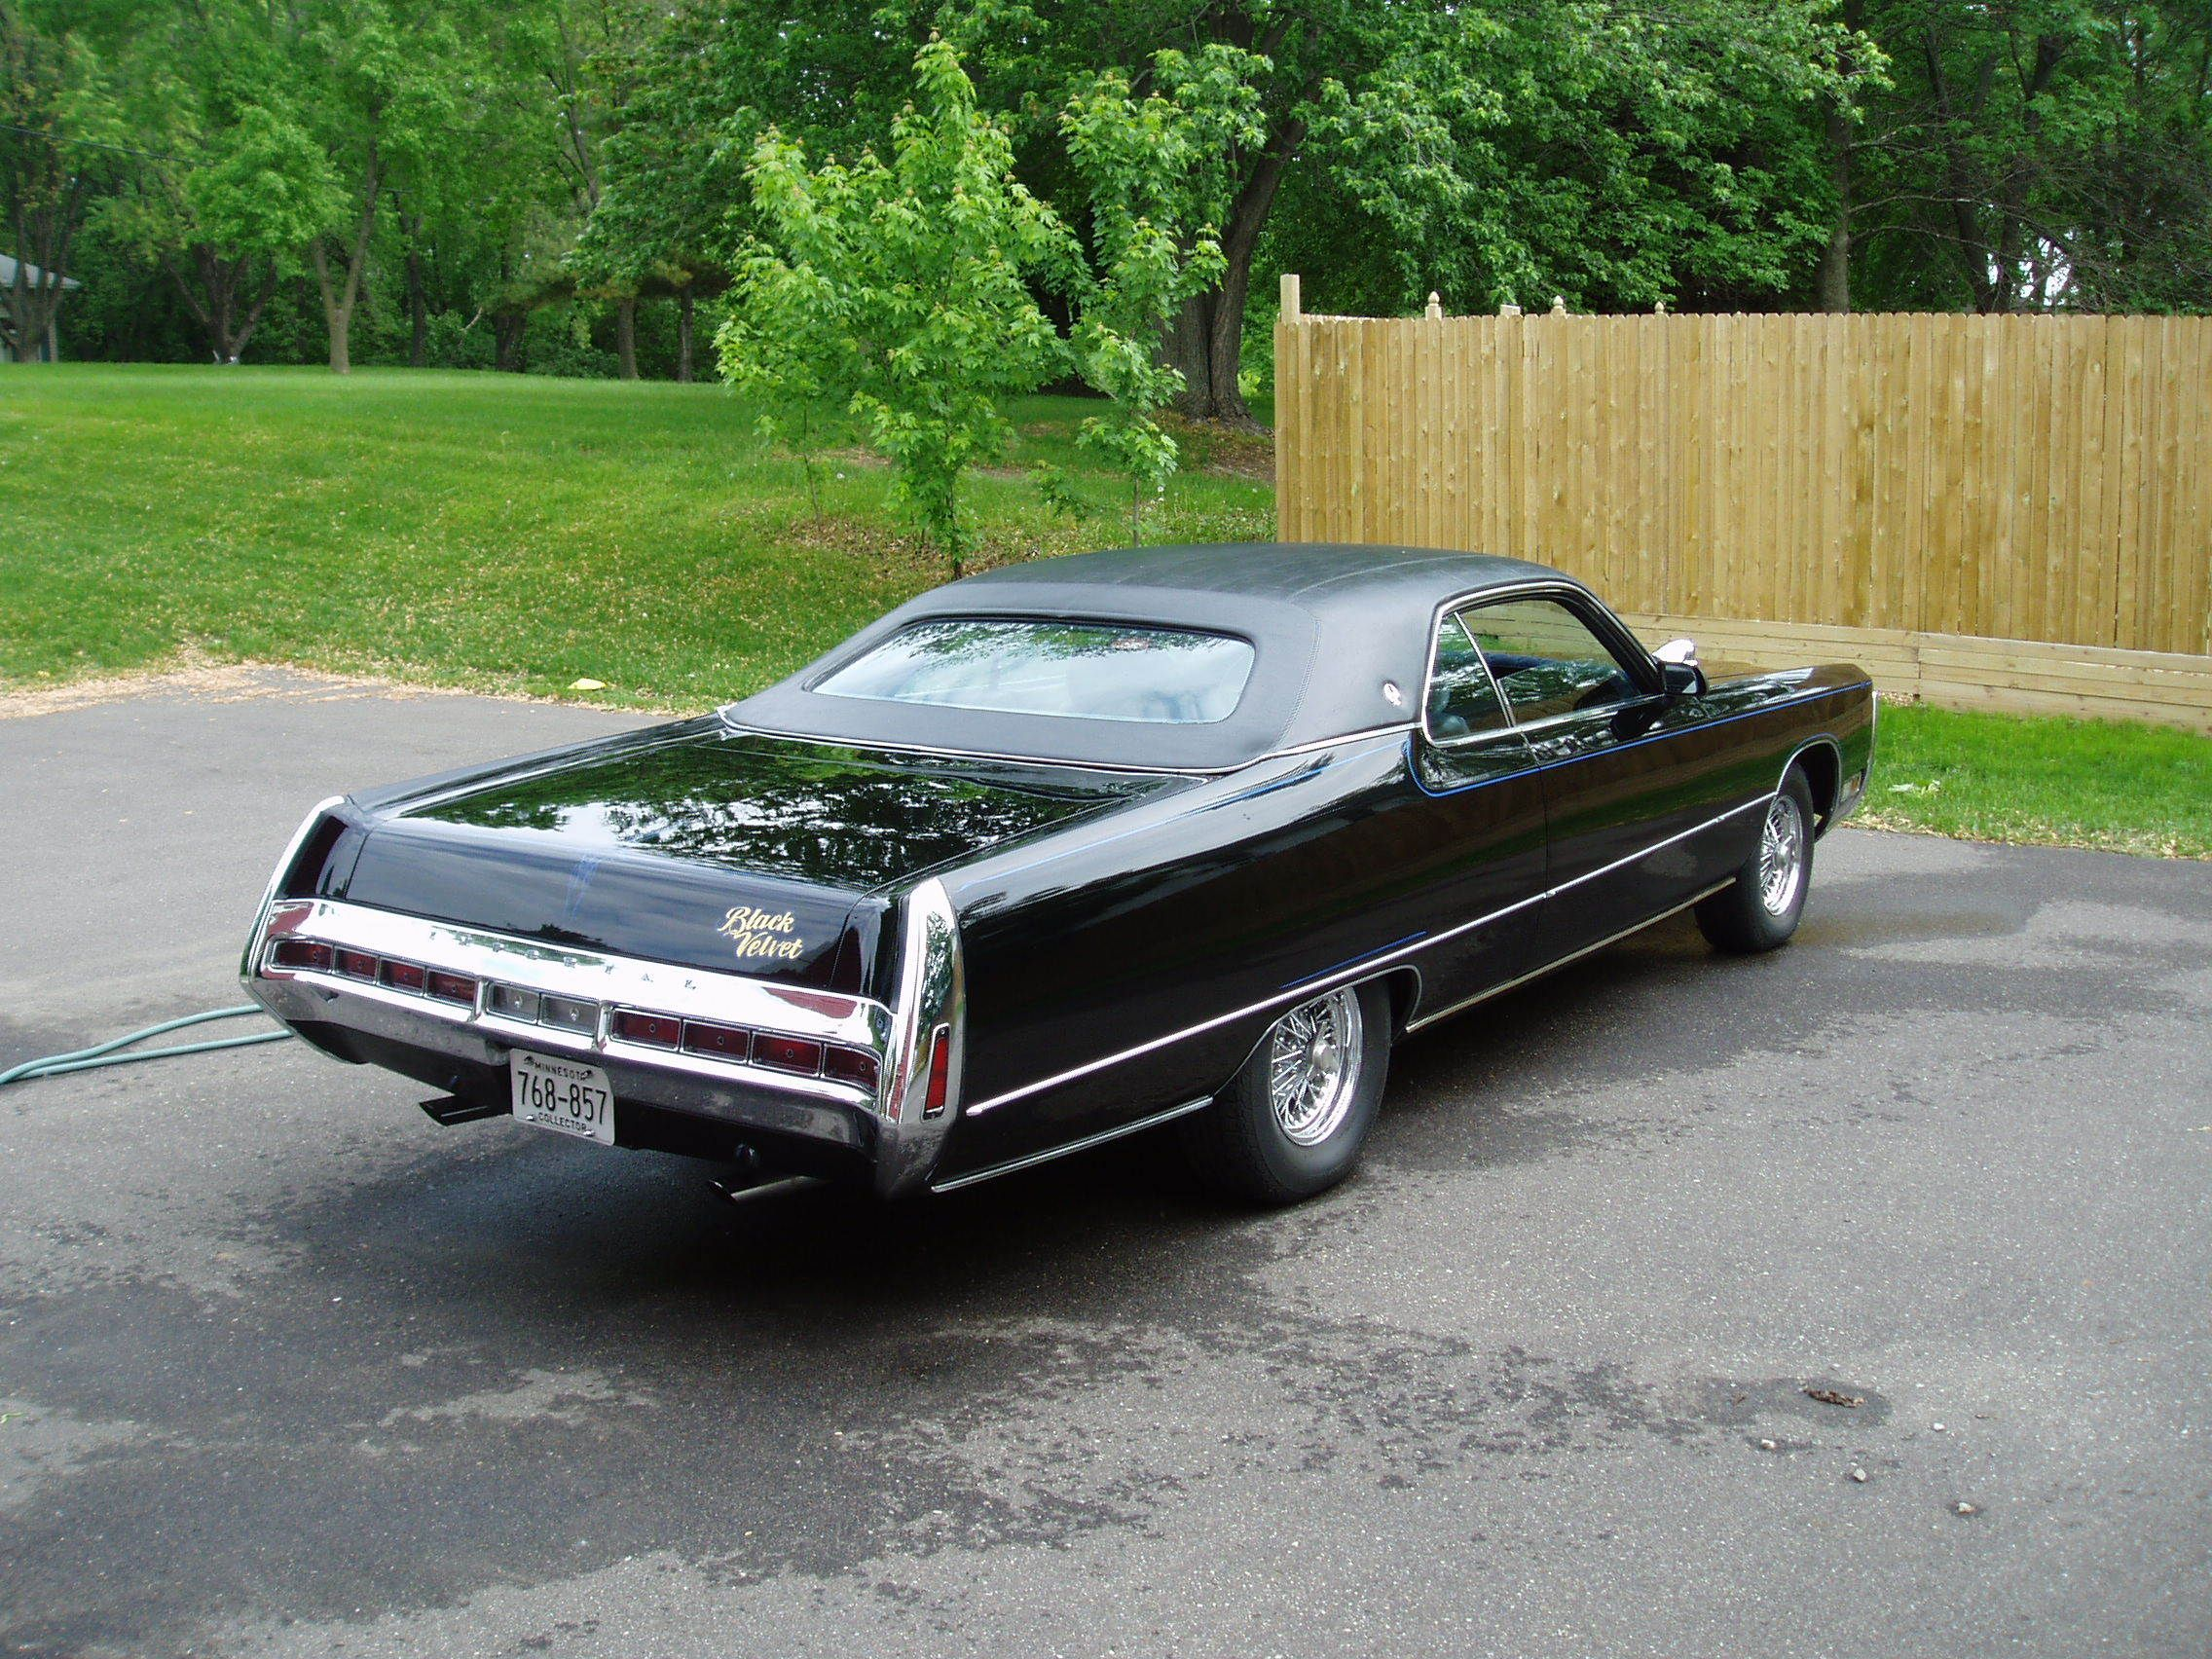 004900 1970 Chrysler Imperial 33070330005 Original With Images